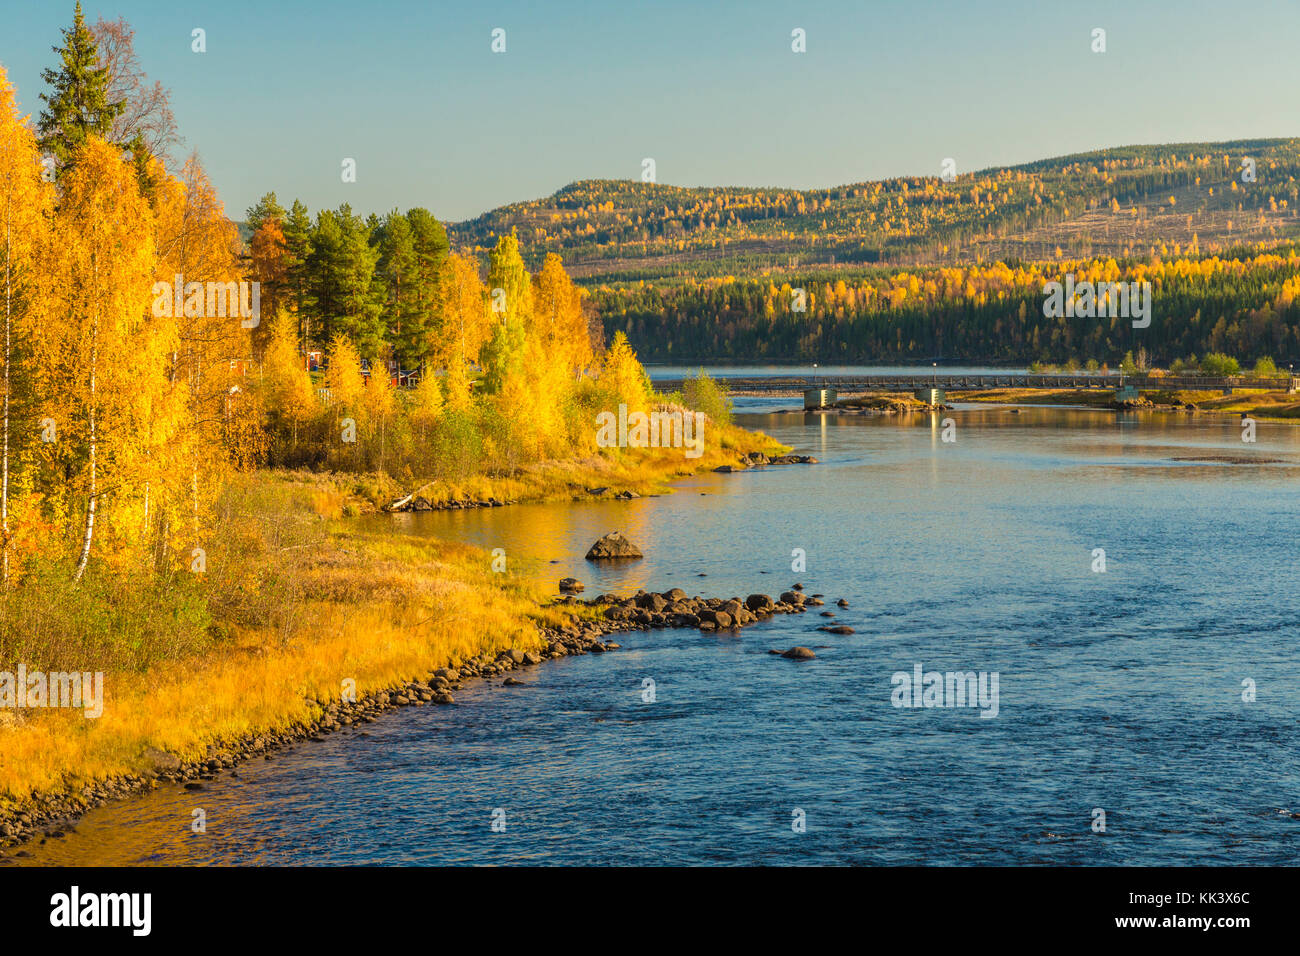 View over Storforsen with yellow birch trees, bridge crossing the river, Storforsen, Älvsbyn county, Norrbotten, - Stock Image